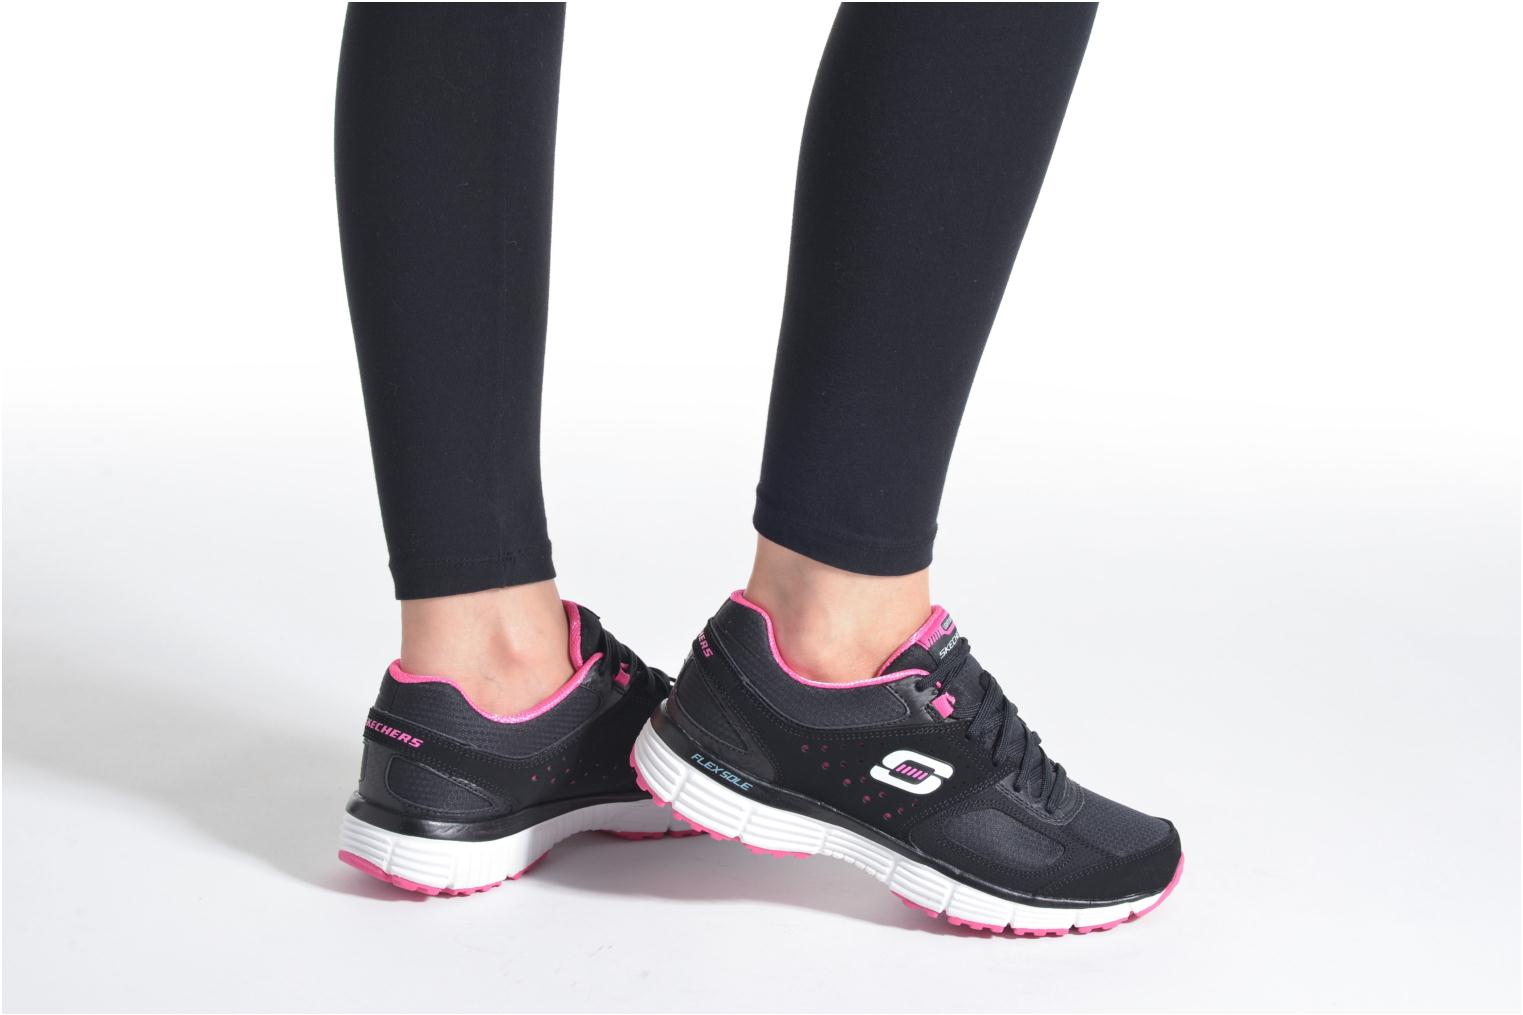 Skechers Up Agility Pink Hot Black Ramp r6gwpqr